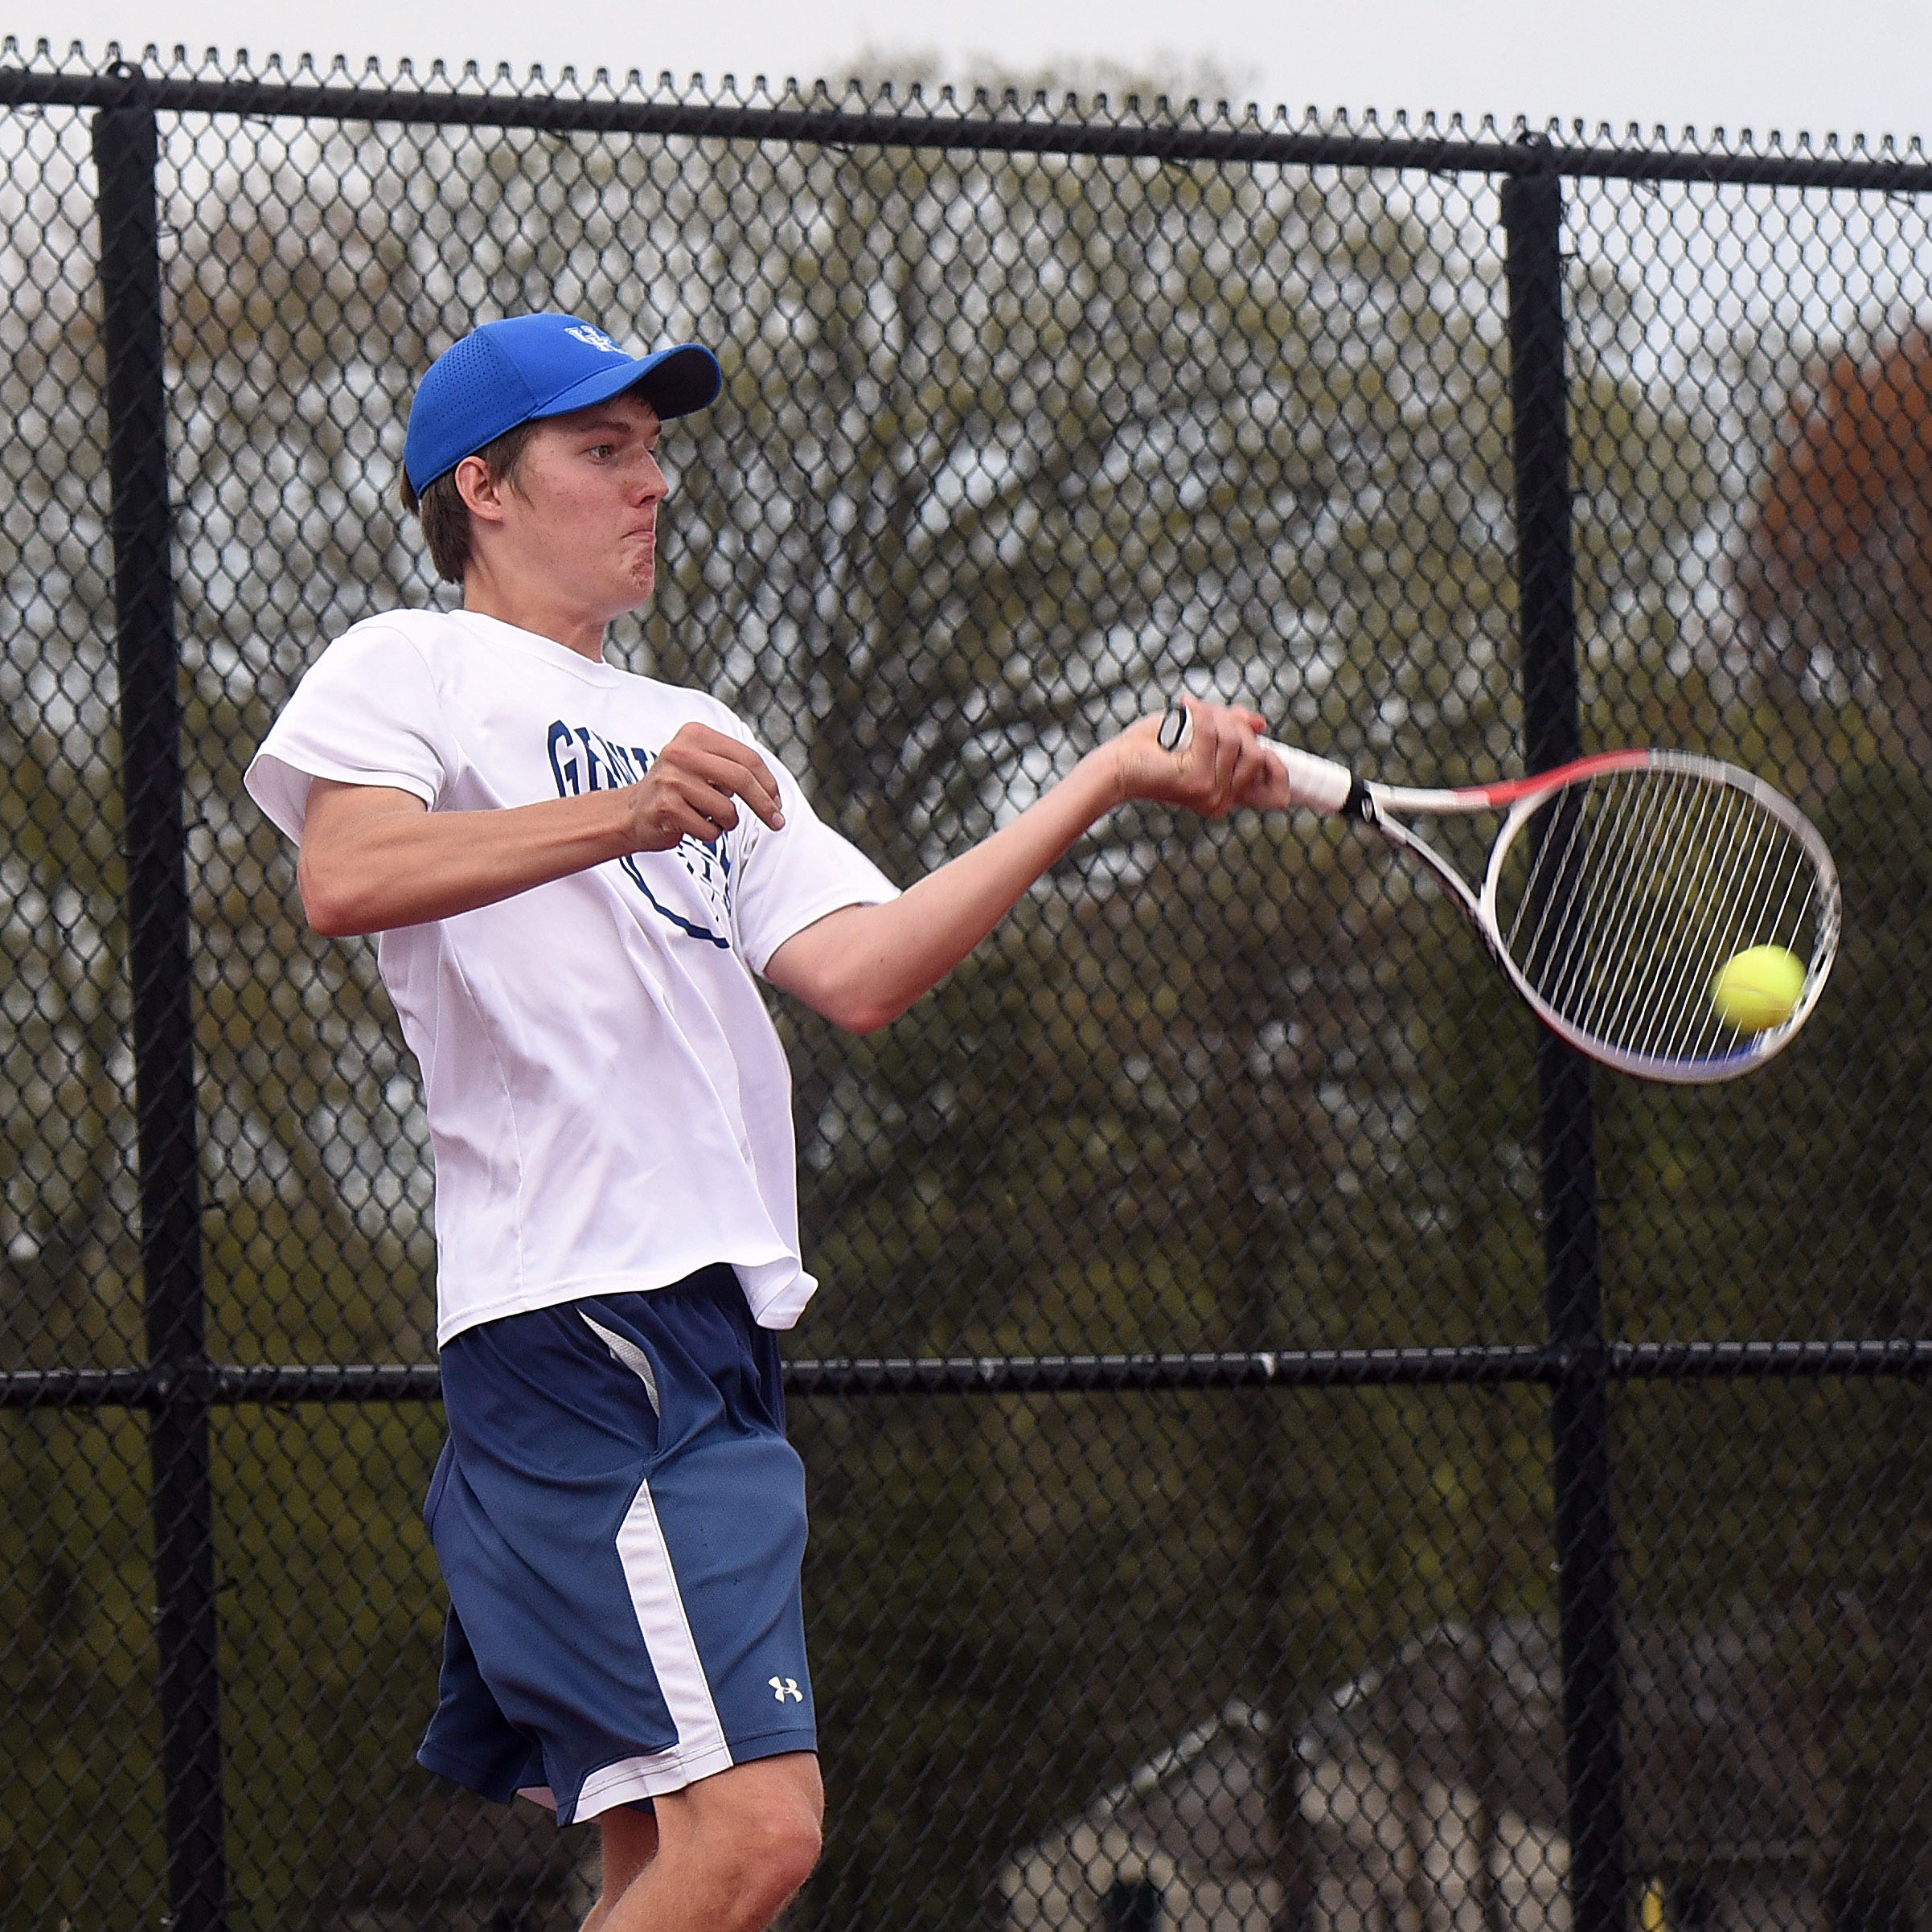 Roundup: Granville's Conway qualifies for district tennis